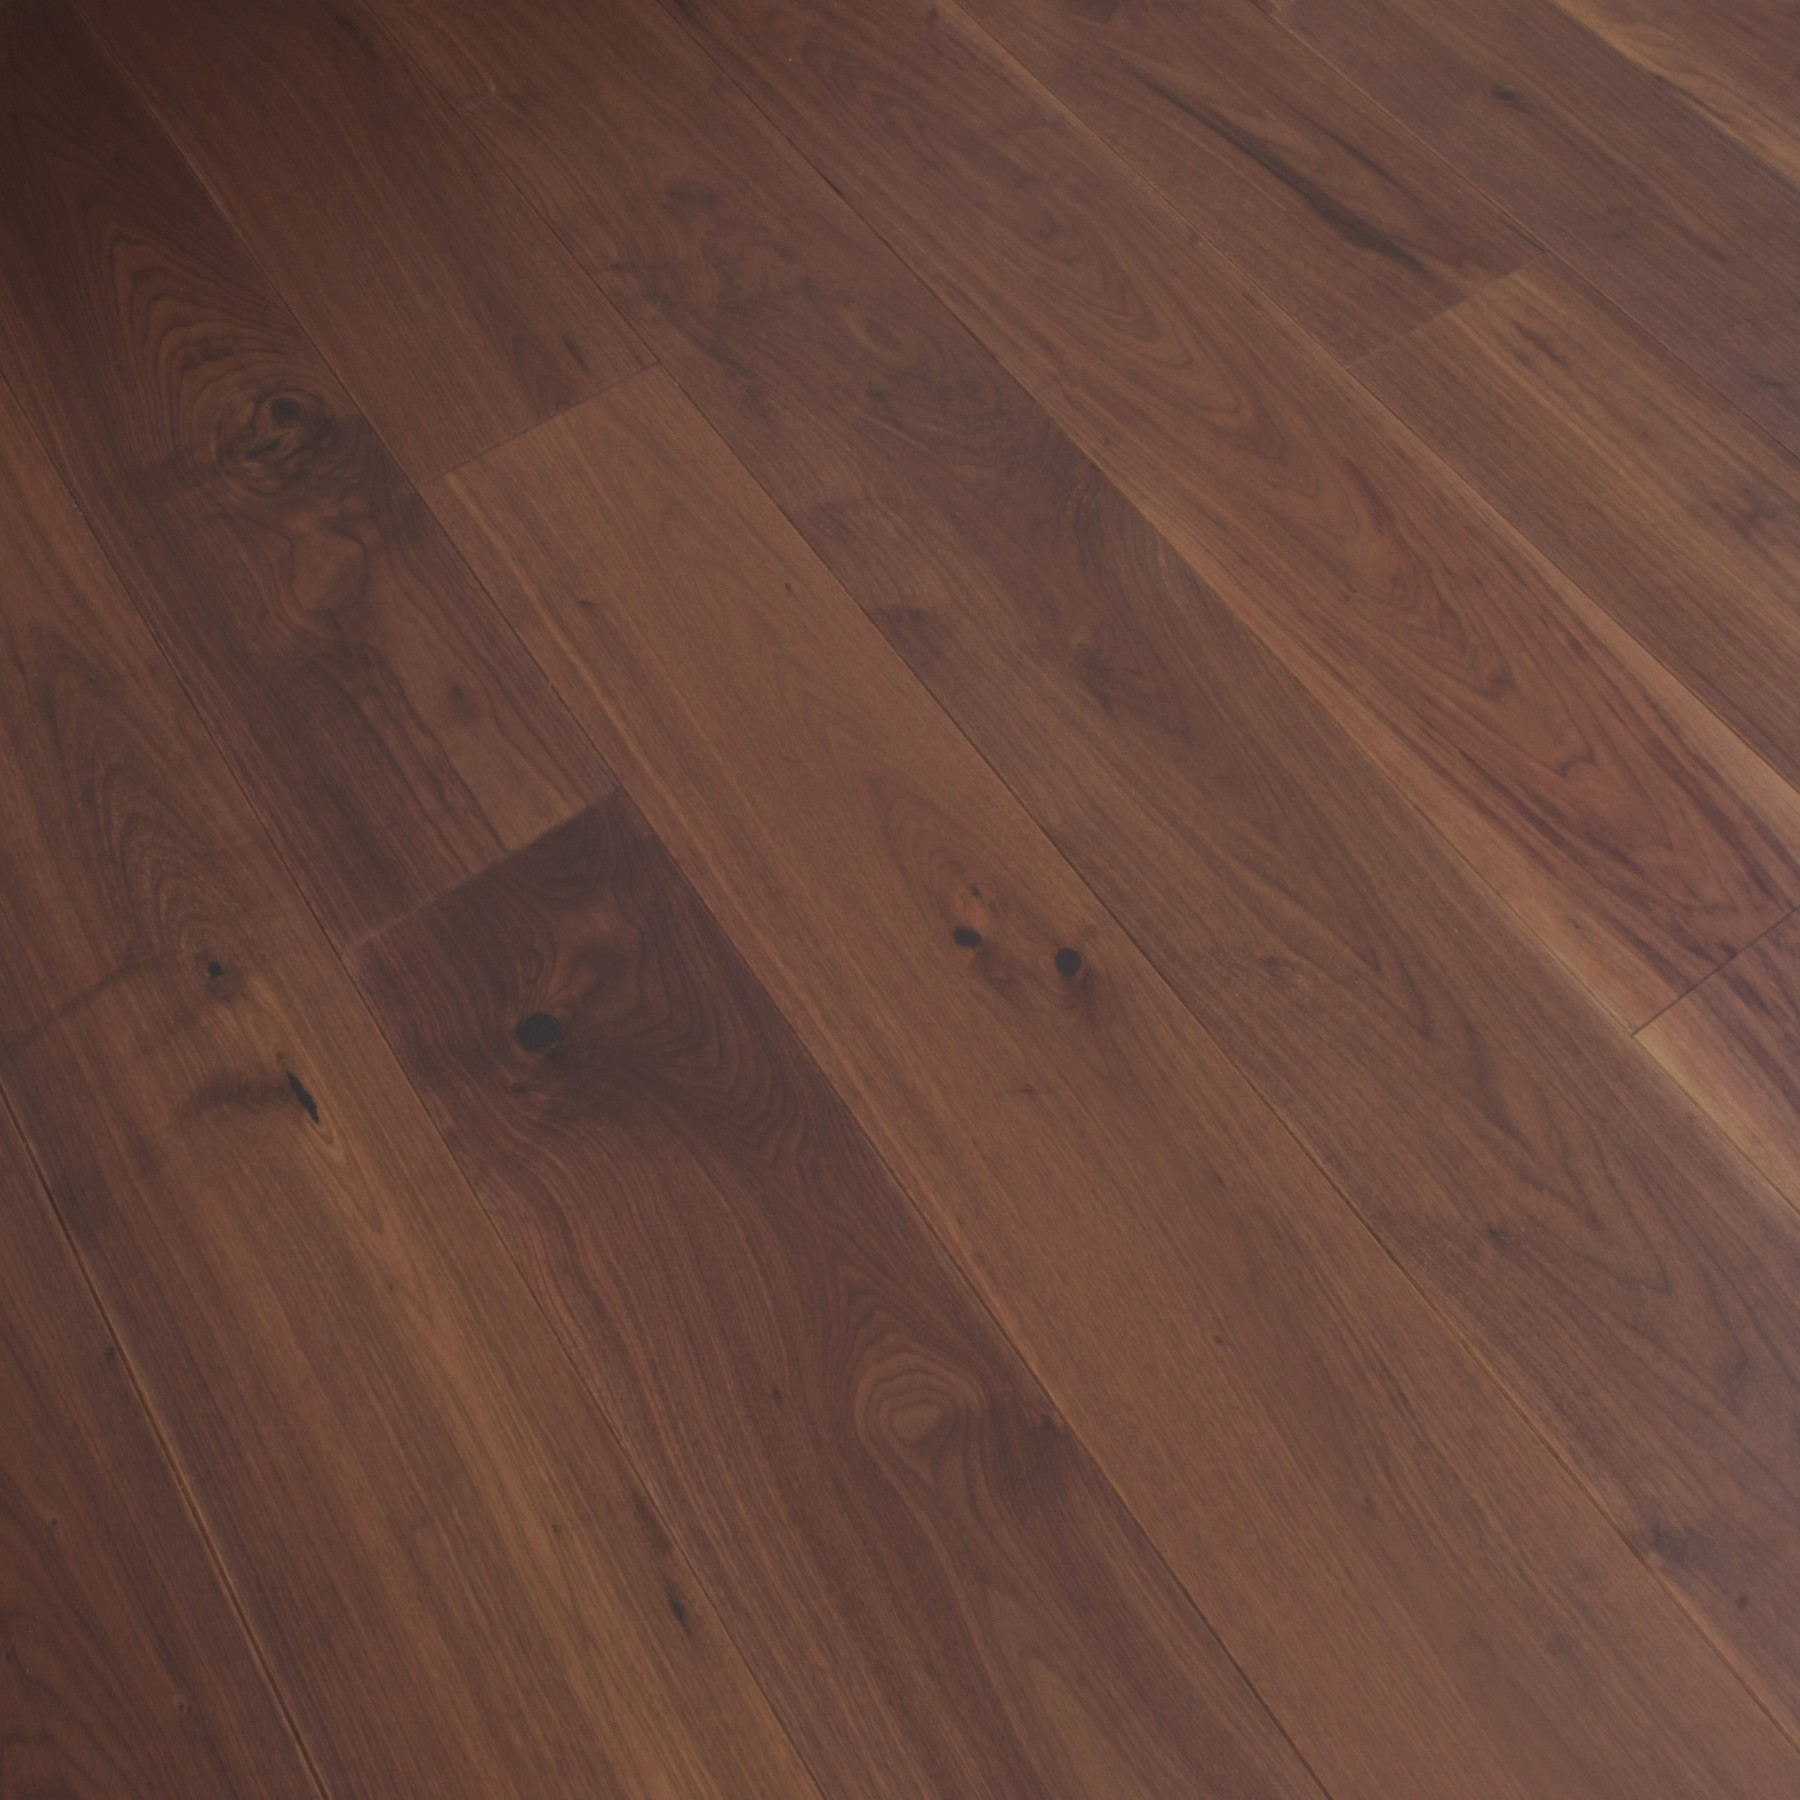 BELLA ARMILLA Walnut Flooring Flat Oiled